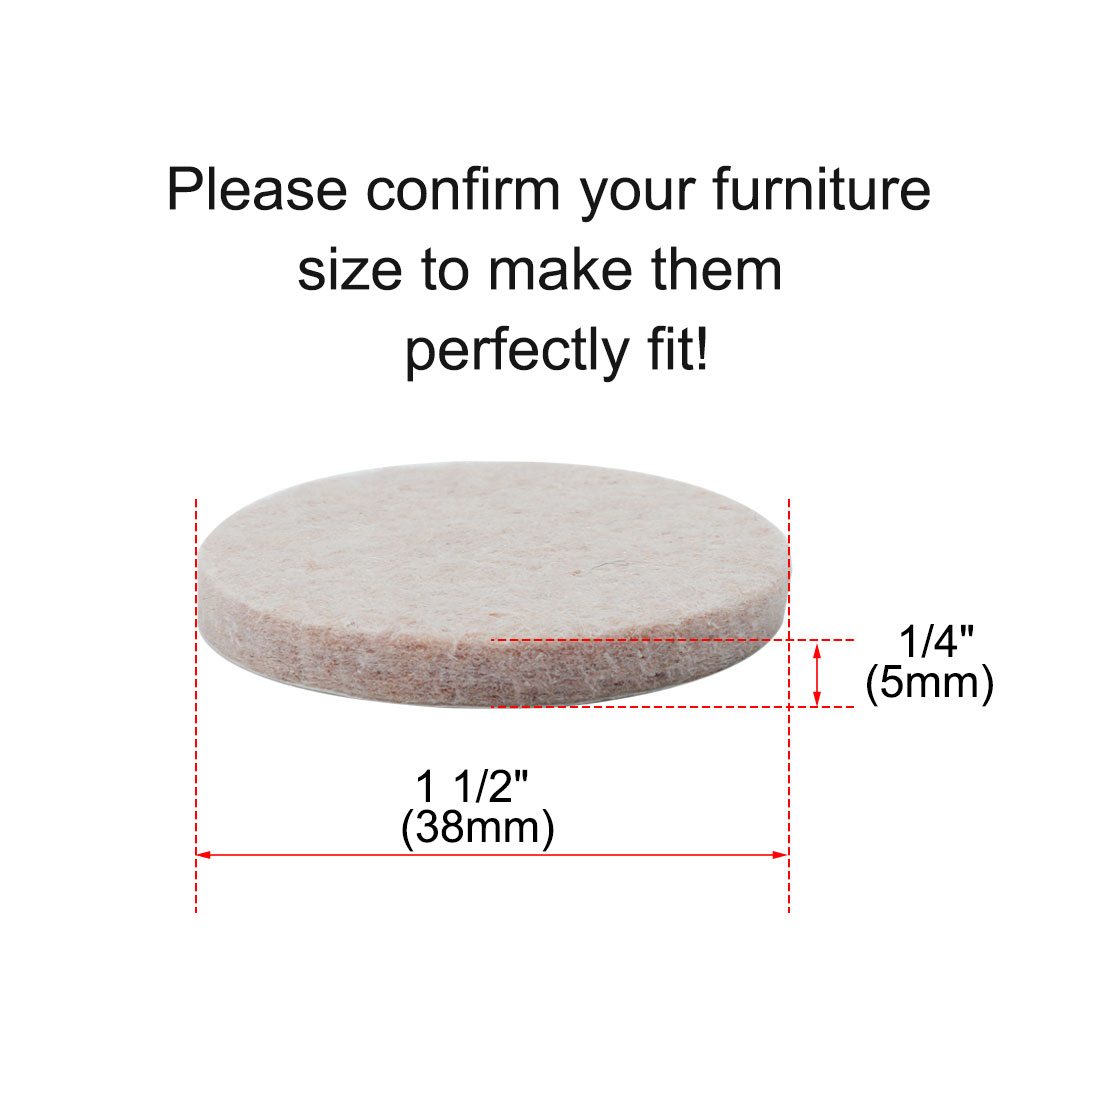 "Furniture Pads Round 1 1/2"" Self-stick Anti-scratch Table Floor Protector 36pcs - image 1 de 7"